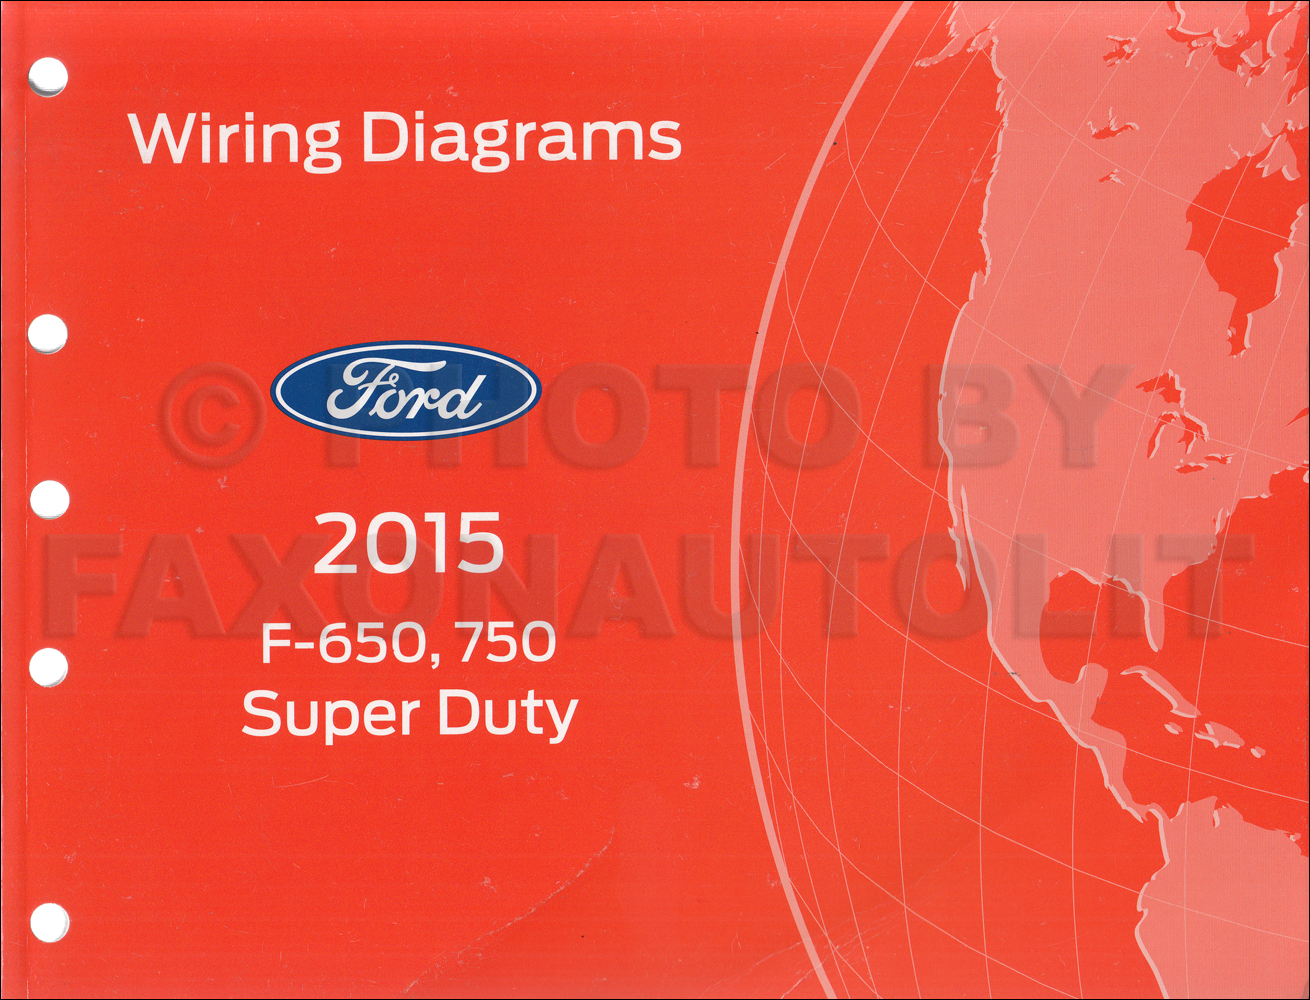 2015 Ford F650 / F750 Factory Wiring Diagram | 2015 Ford F650 Wiring Diagram |  | Auto-Repair-Manuals.com